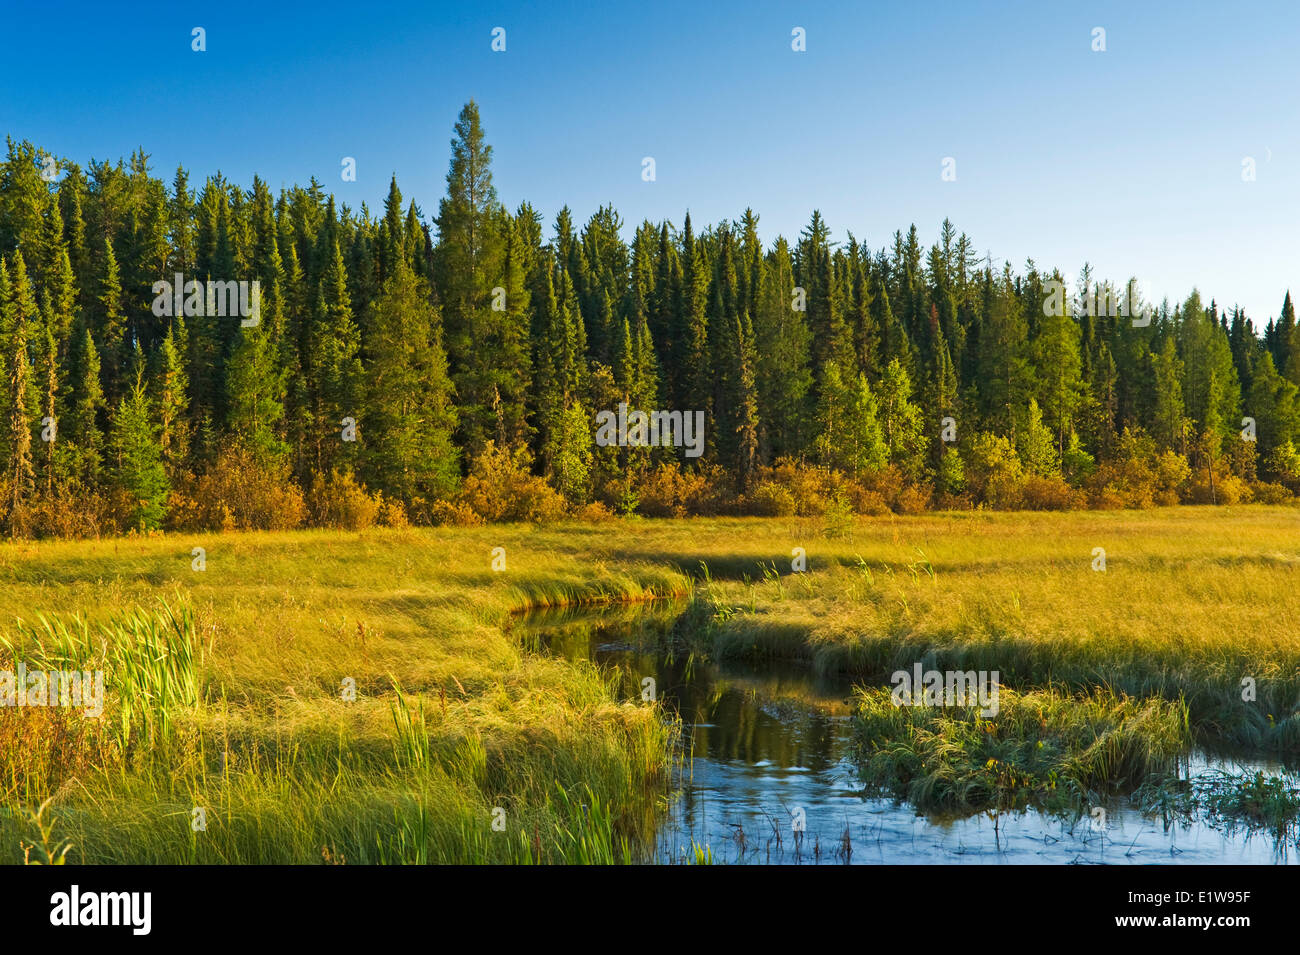 Boreal forest near Beauval, Northern Saskatchewan, Canada - Stock Image